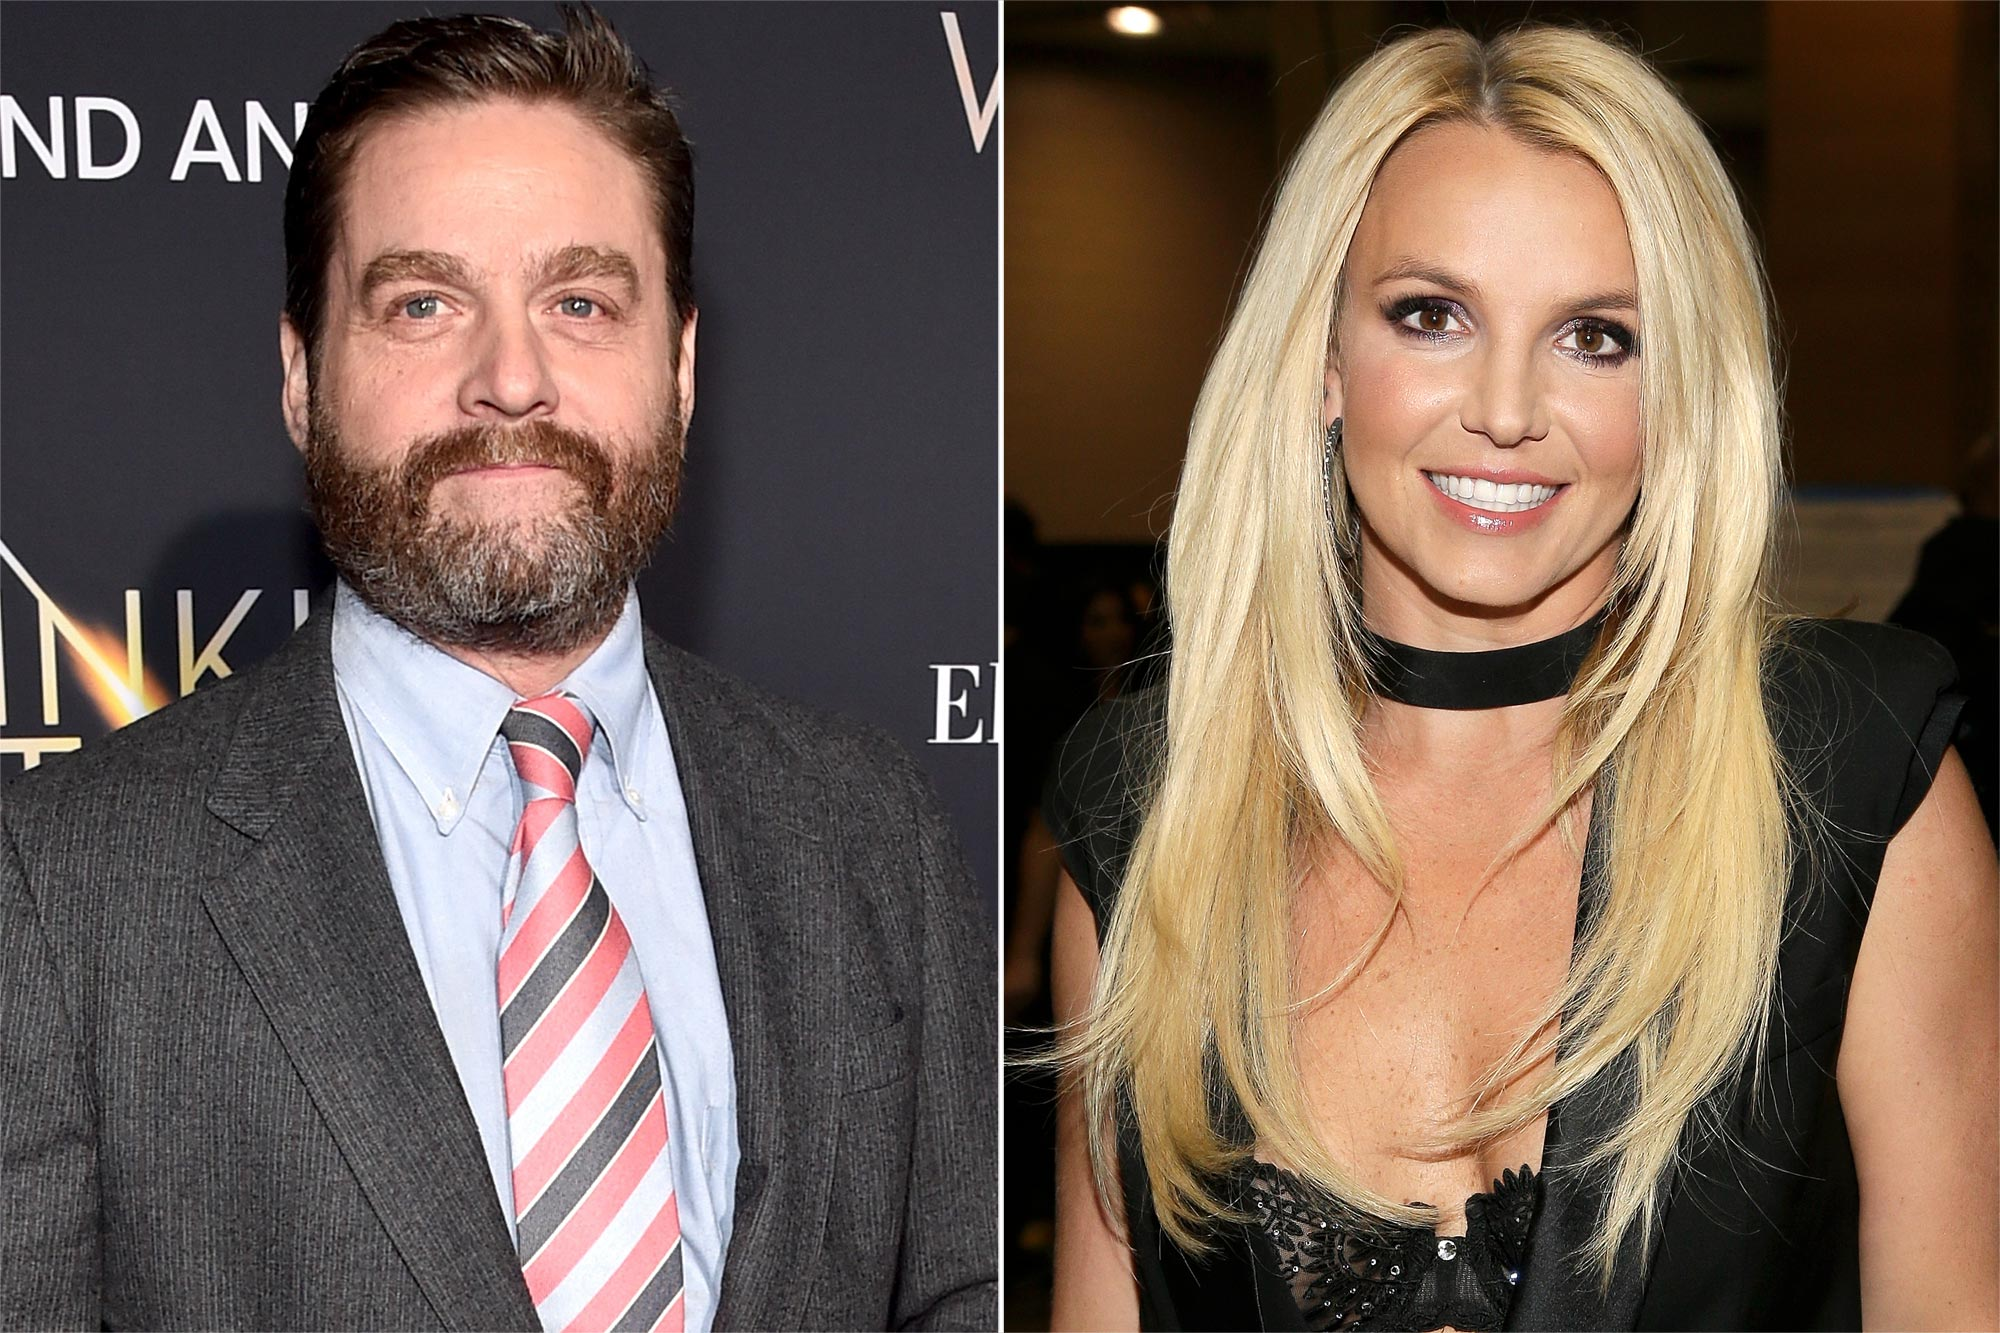 Zach Galifianakis, Britney Spears